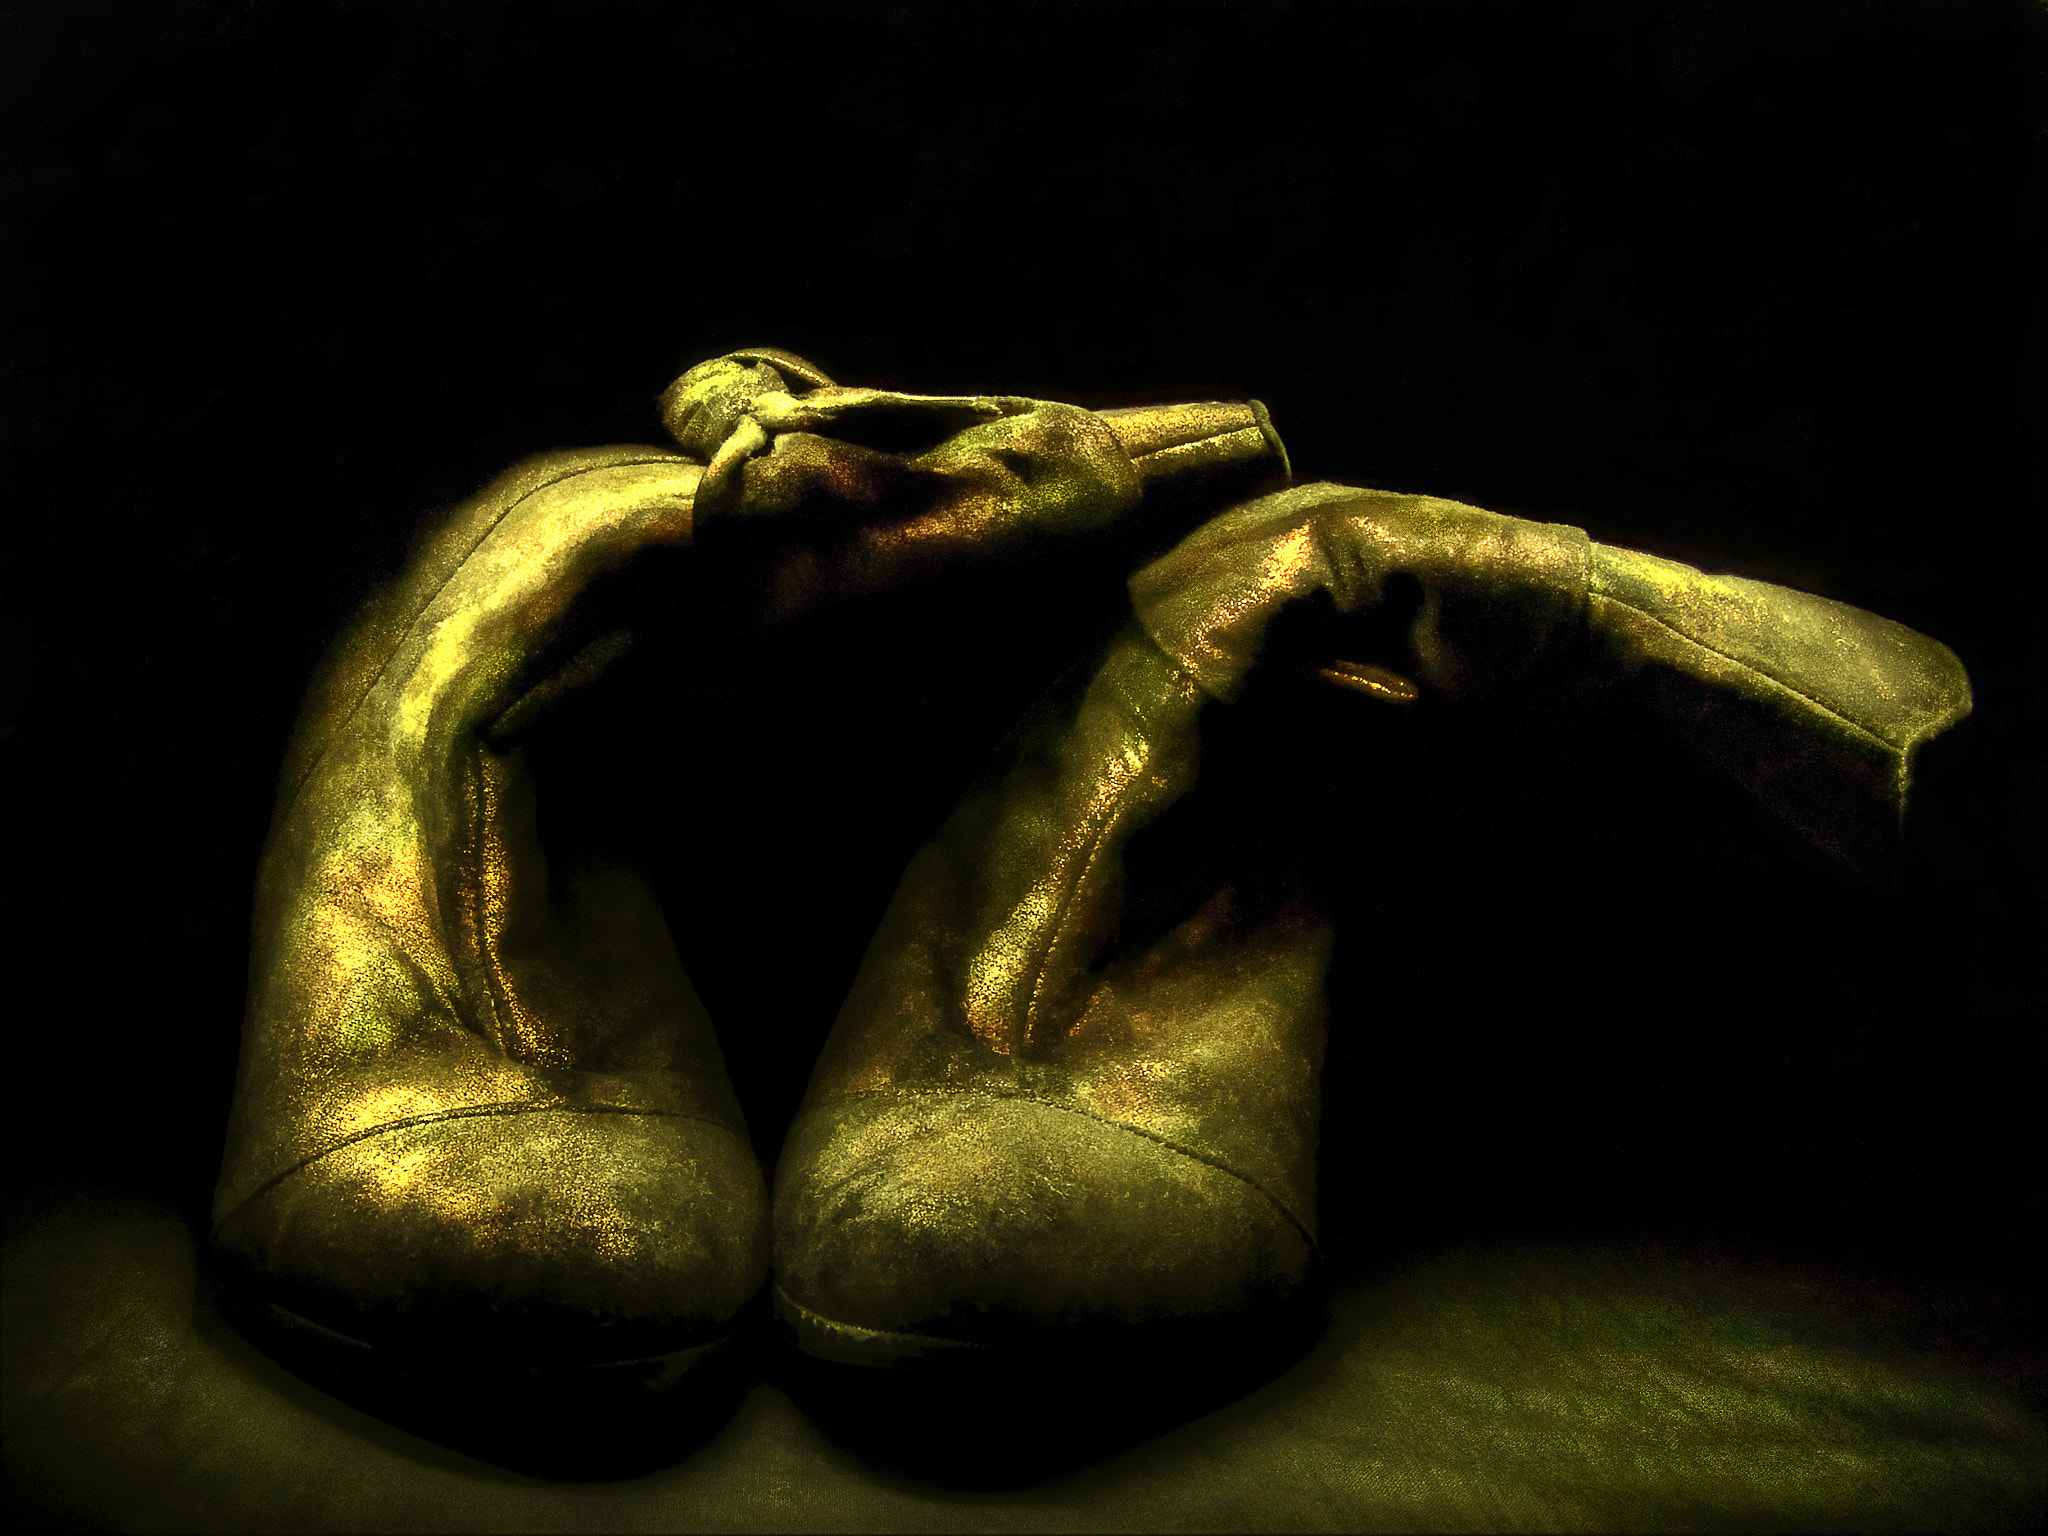 Photograph Golden shoes by Sirenja  on 500px